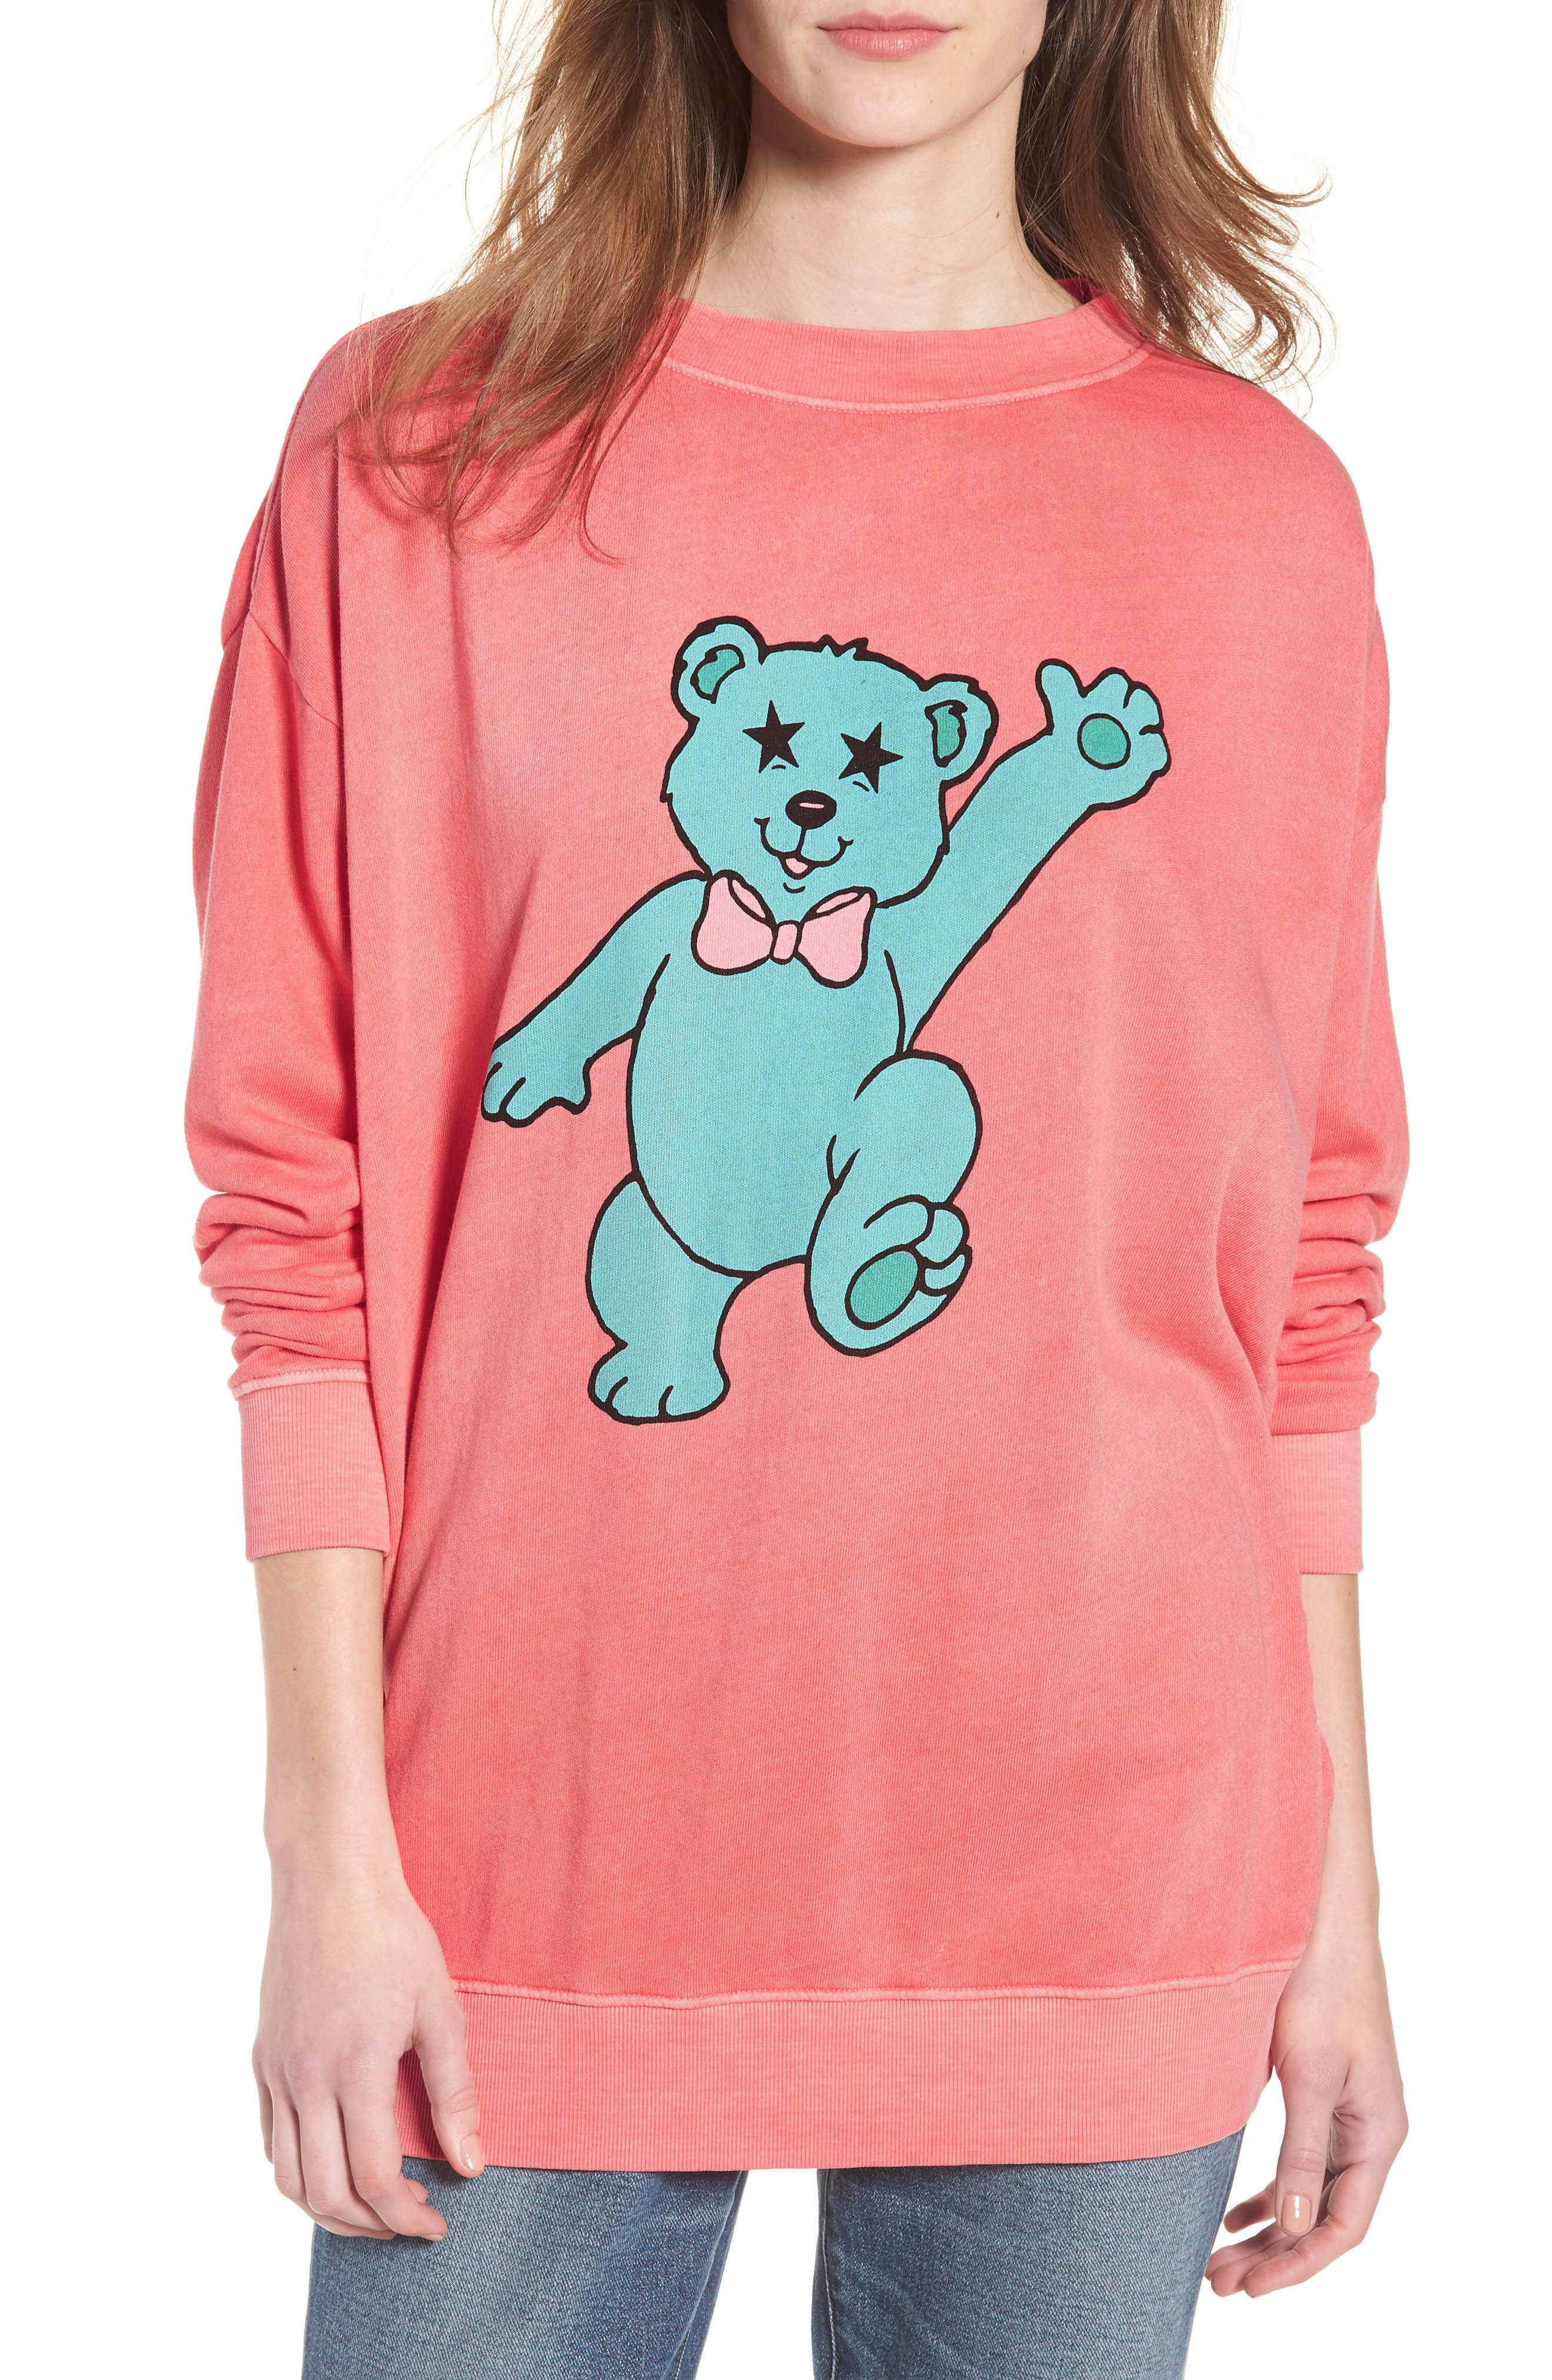 Groovy Teddy Road Trip Pullover Sweatshirt,                             Main thumbnail 1, color,                             640